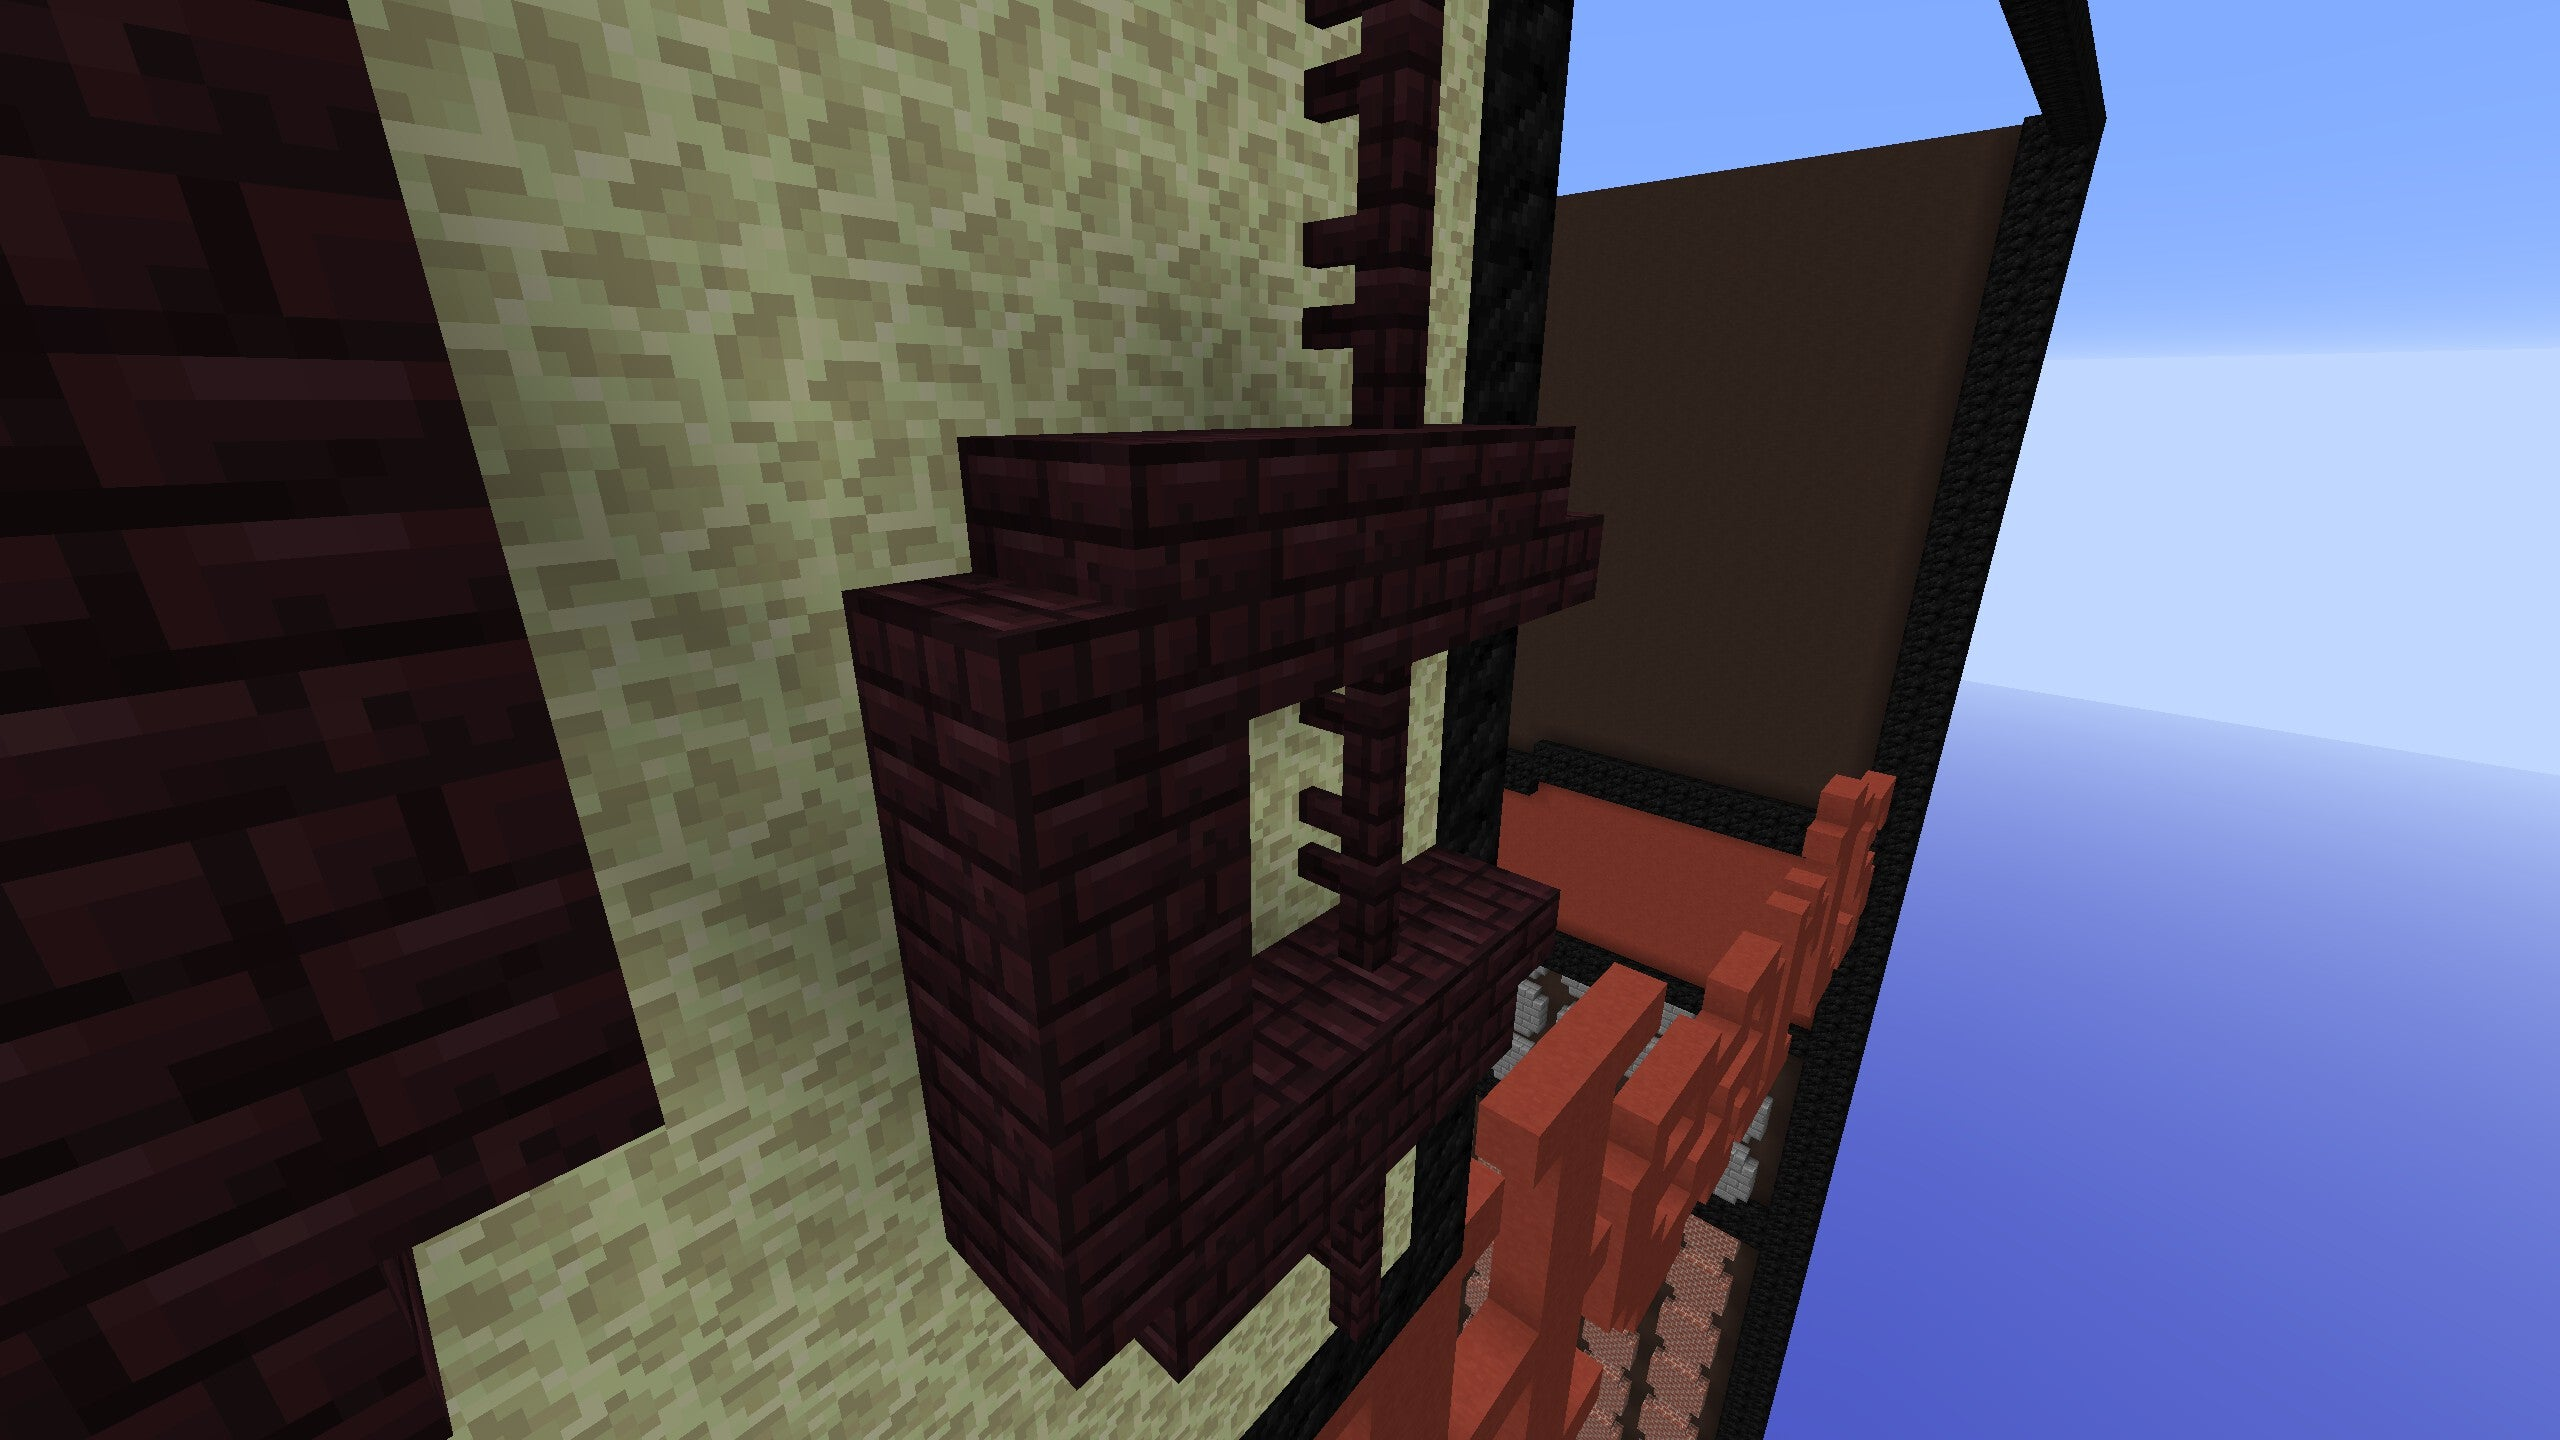 Up Close, 3D Minecraft Art Gets Pretty Freaky